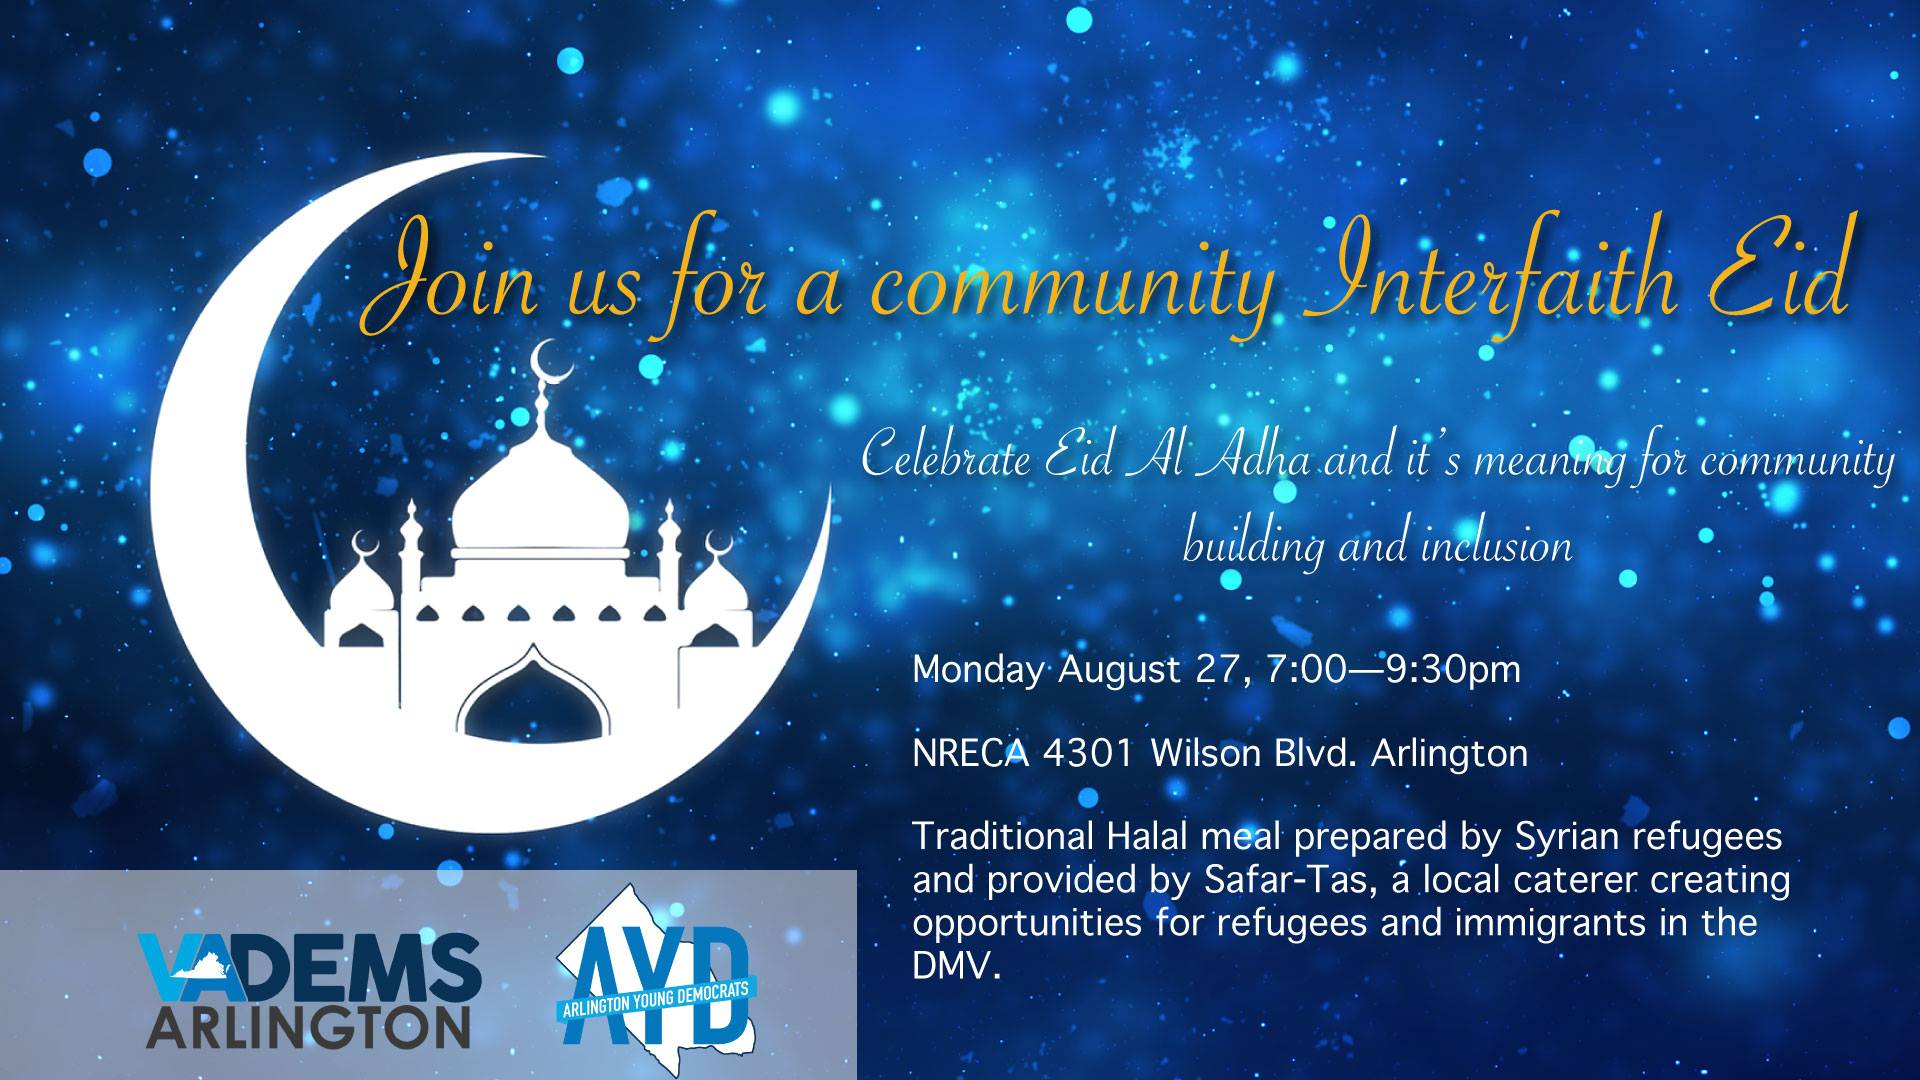 Arlington Democrats Host Interfaith Eid Celebration